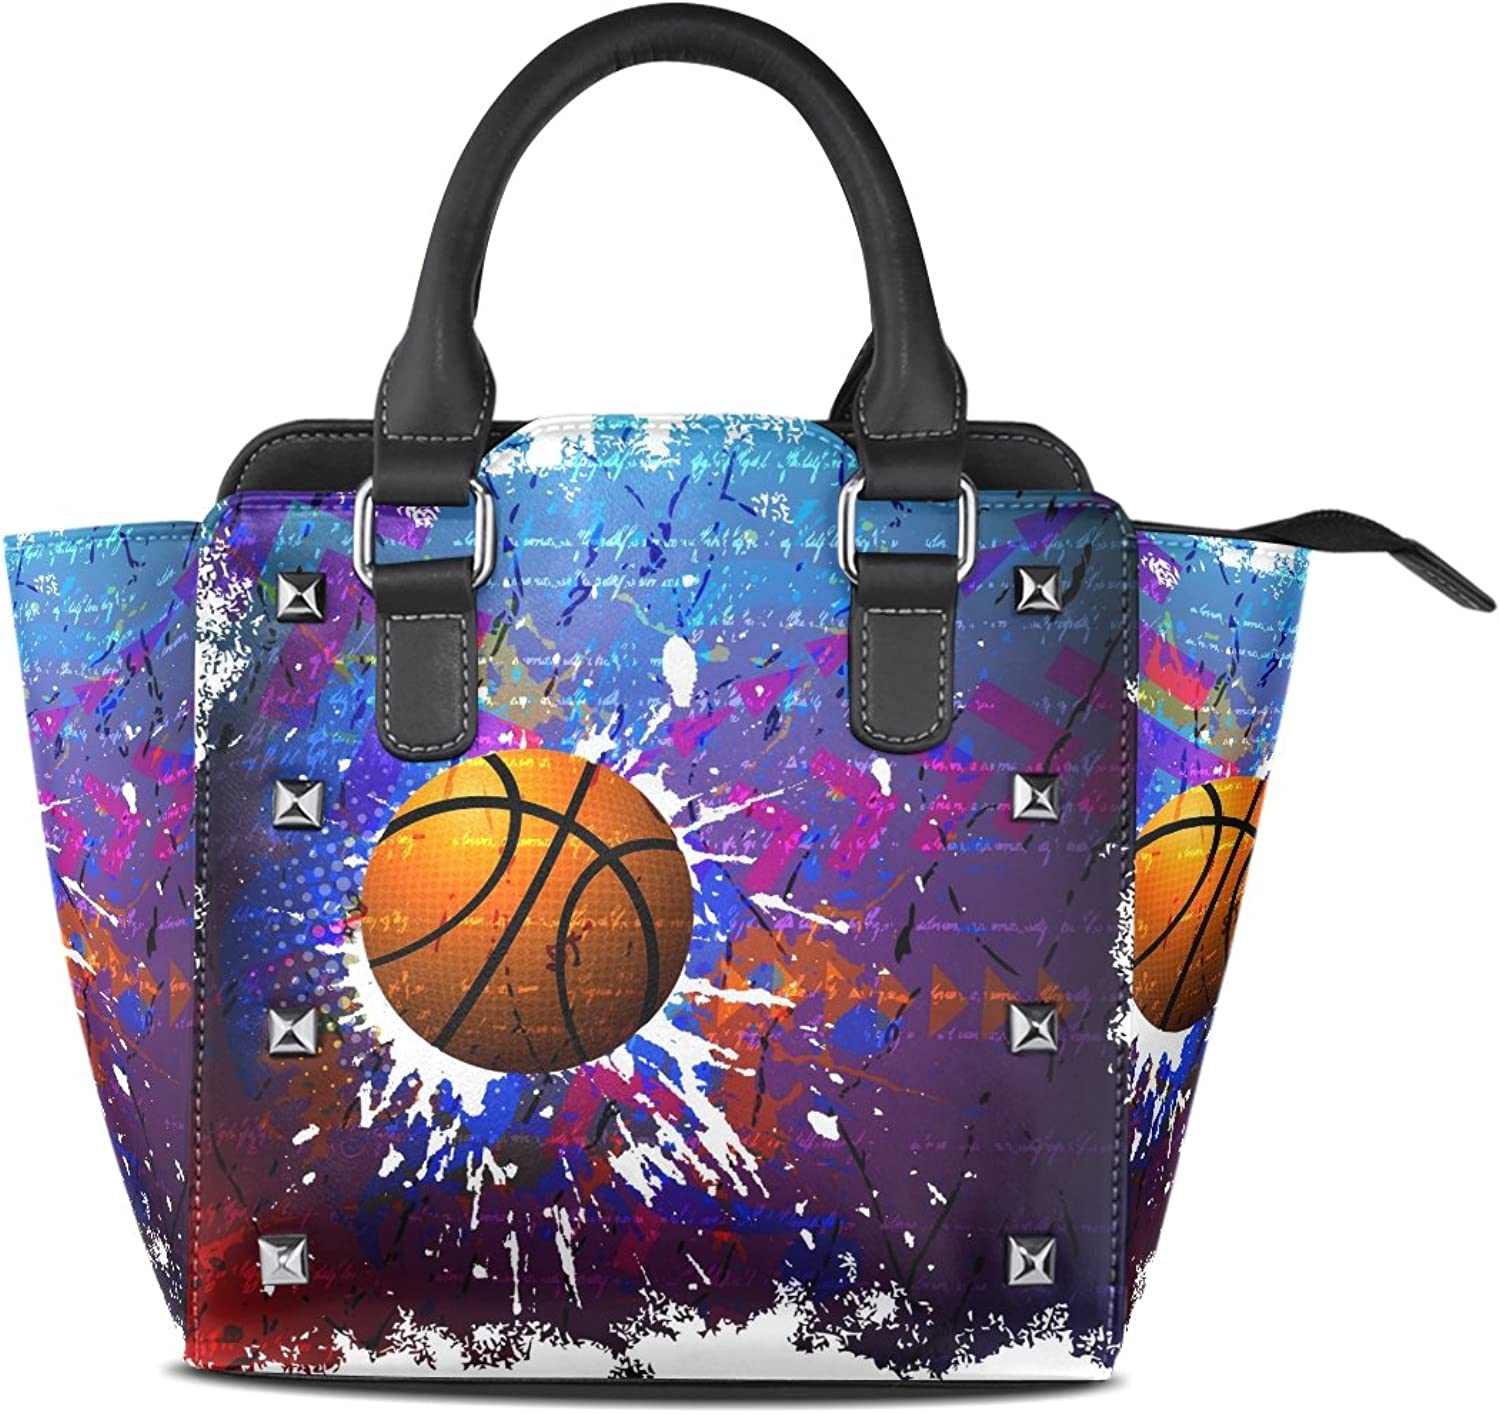 Sunlome Hippie Basketball Print Handbags Women's PU Leather Top-Handle Shoulder Bags